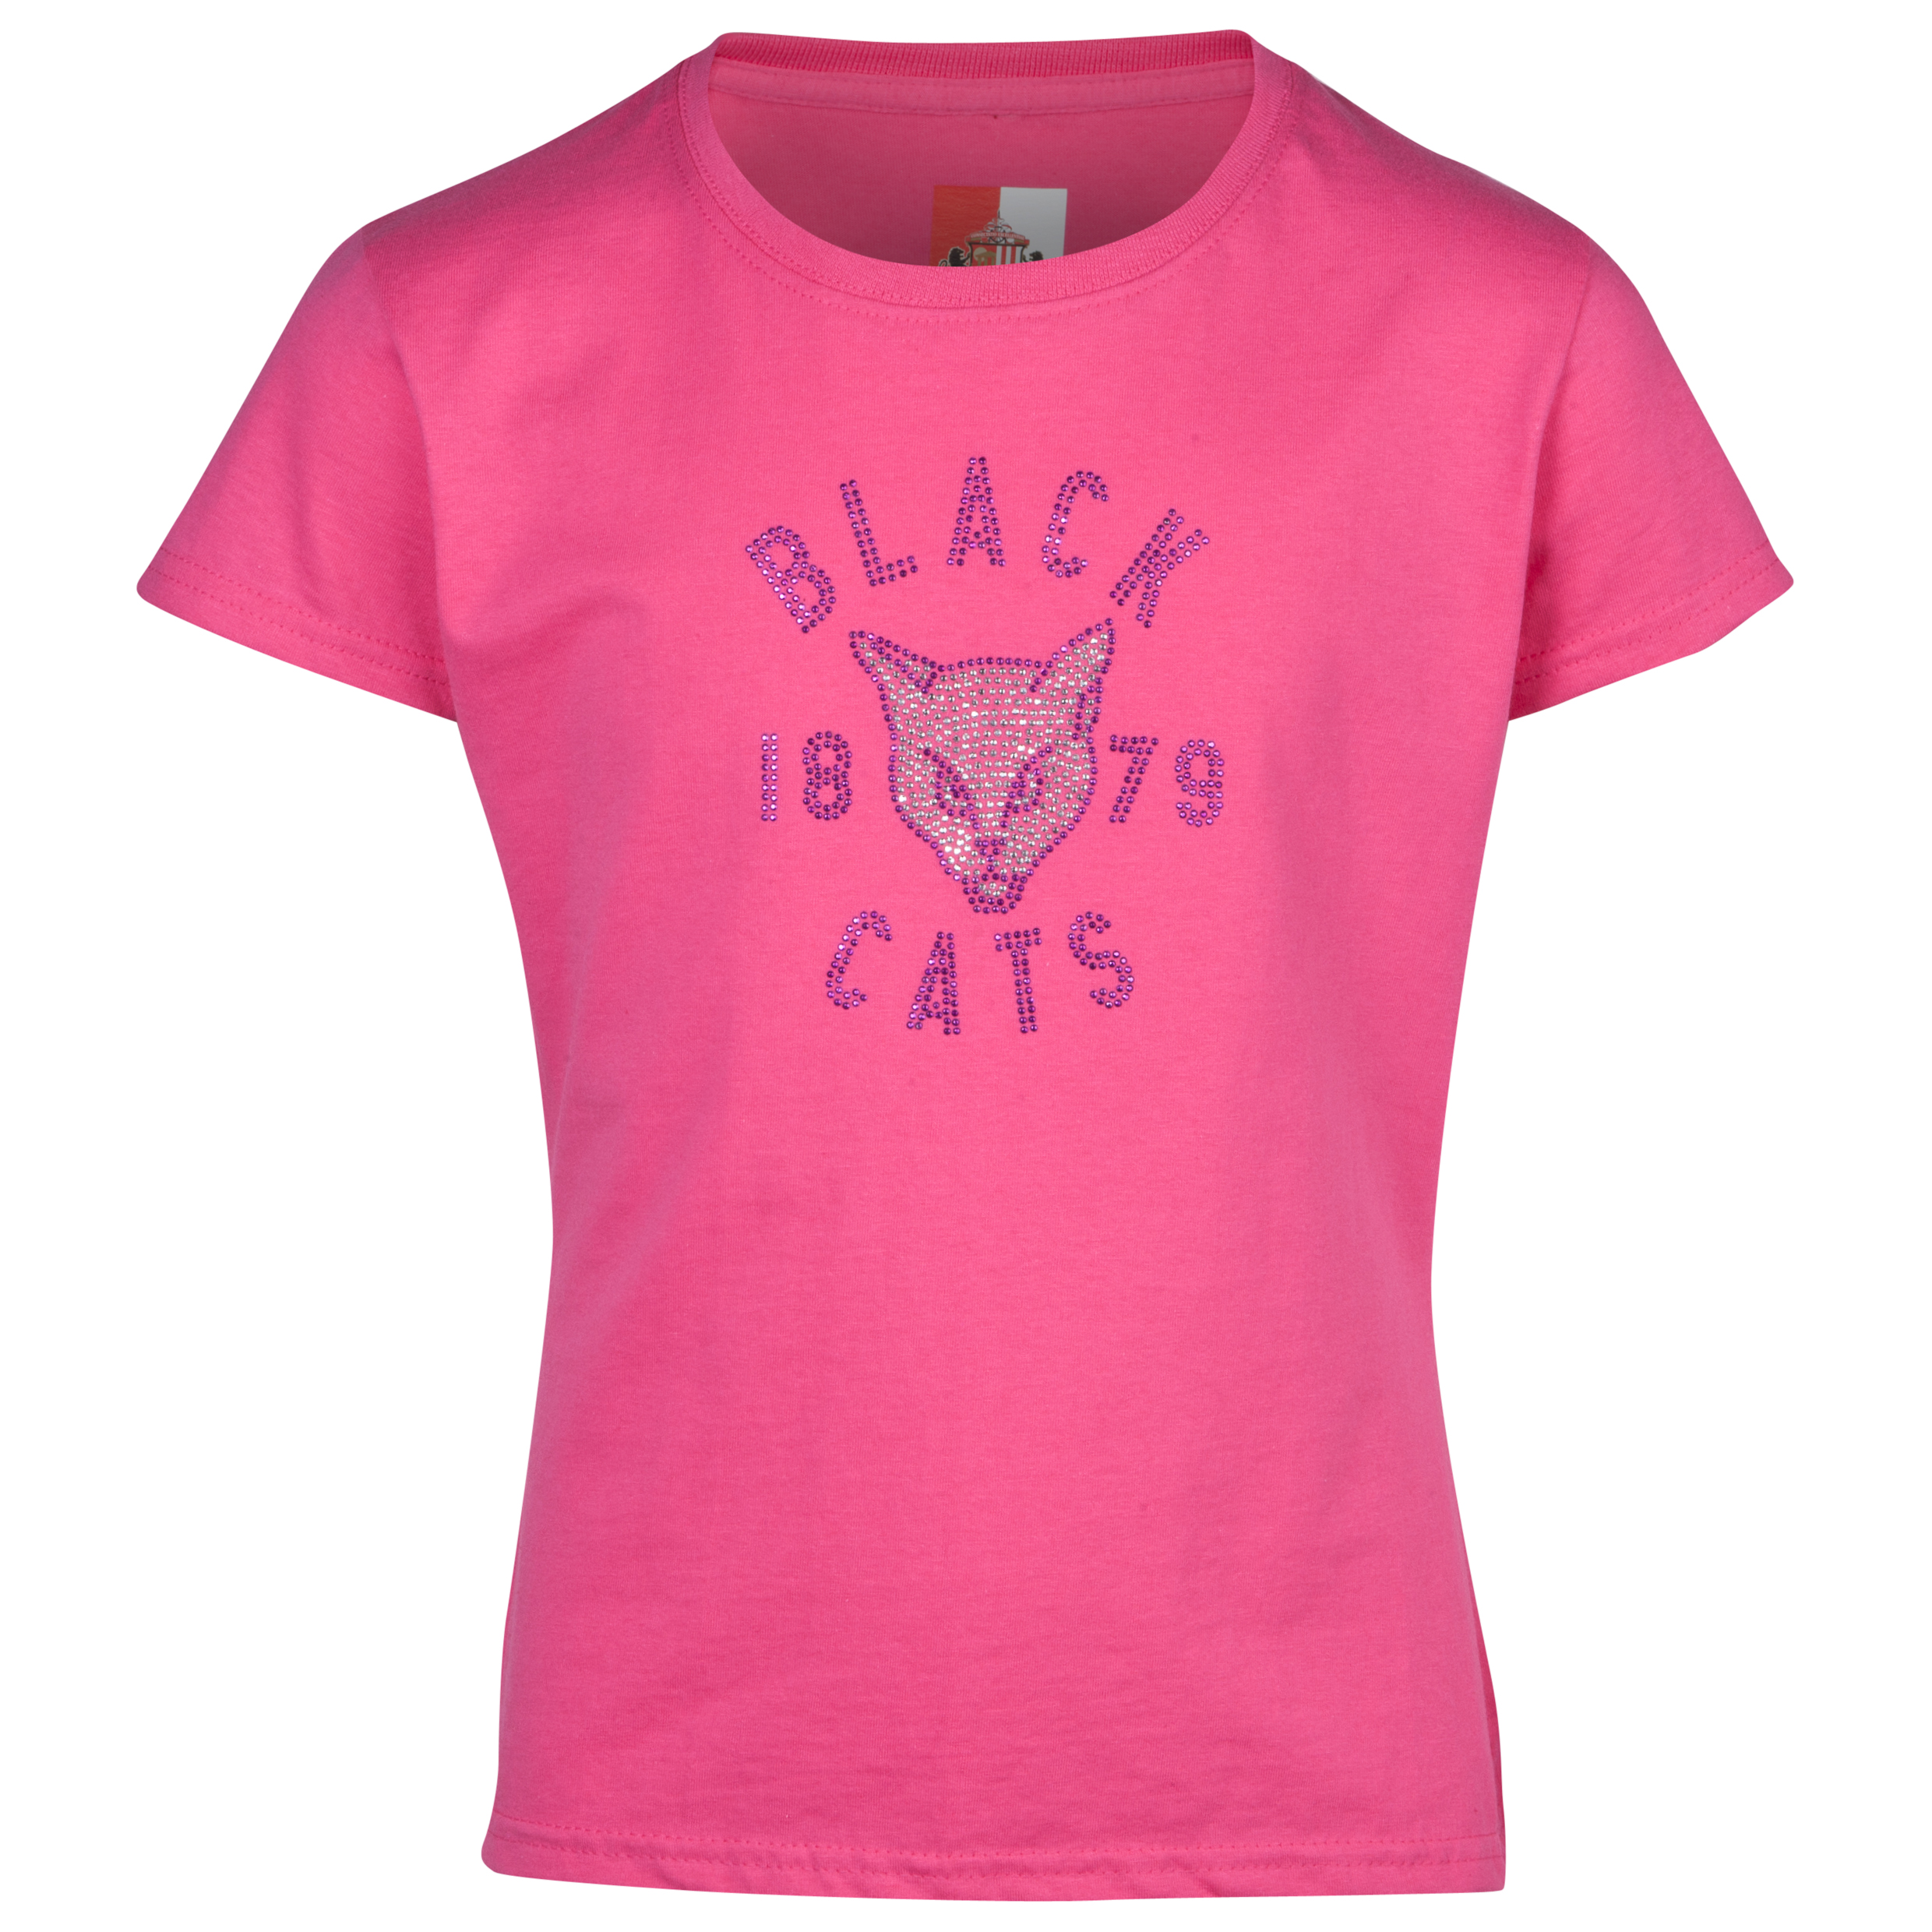 Sunderland Rhinestone Black Cat T-Shirt- Girls Pink